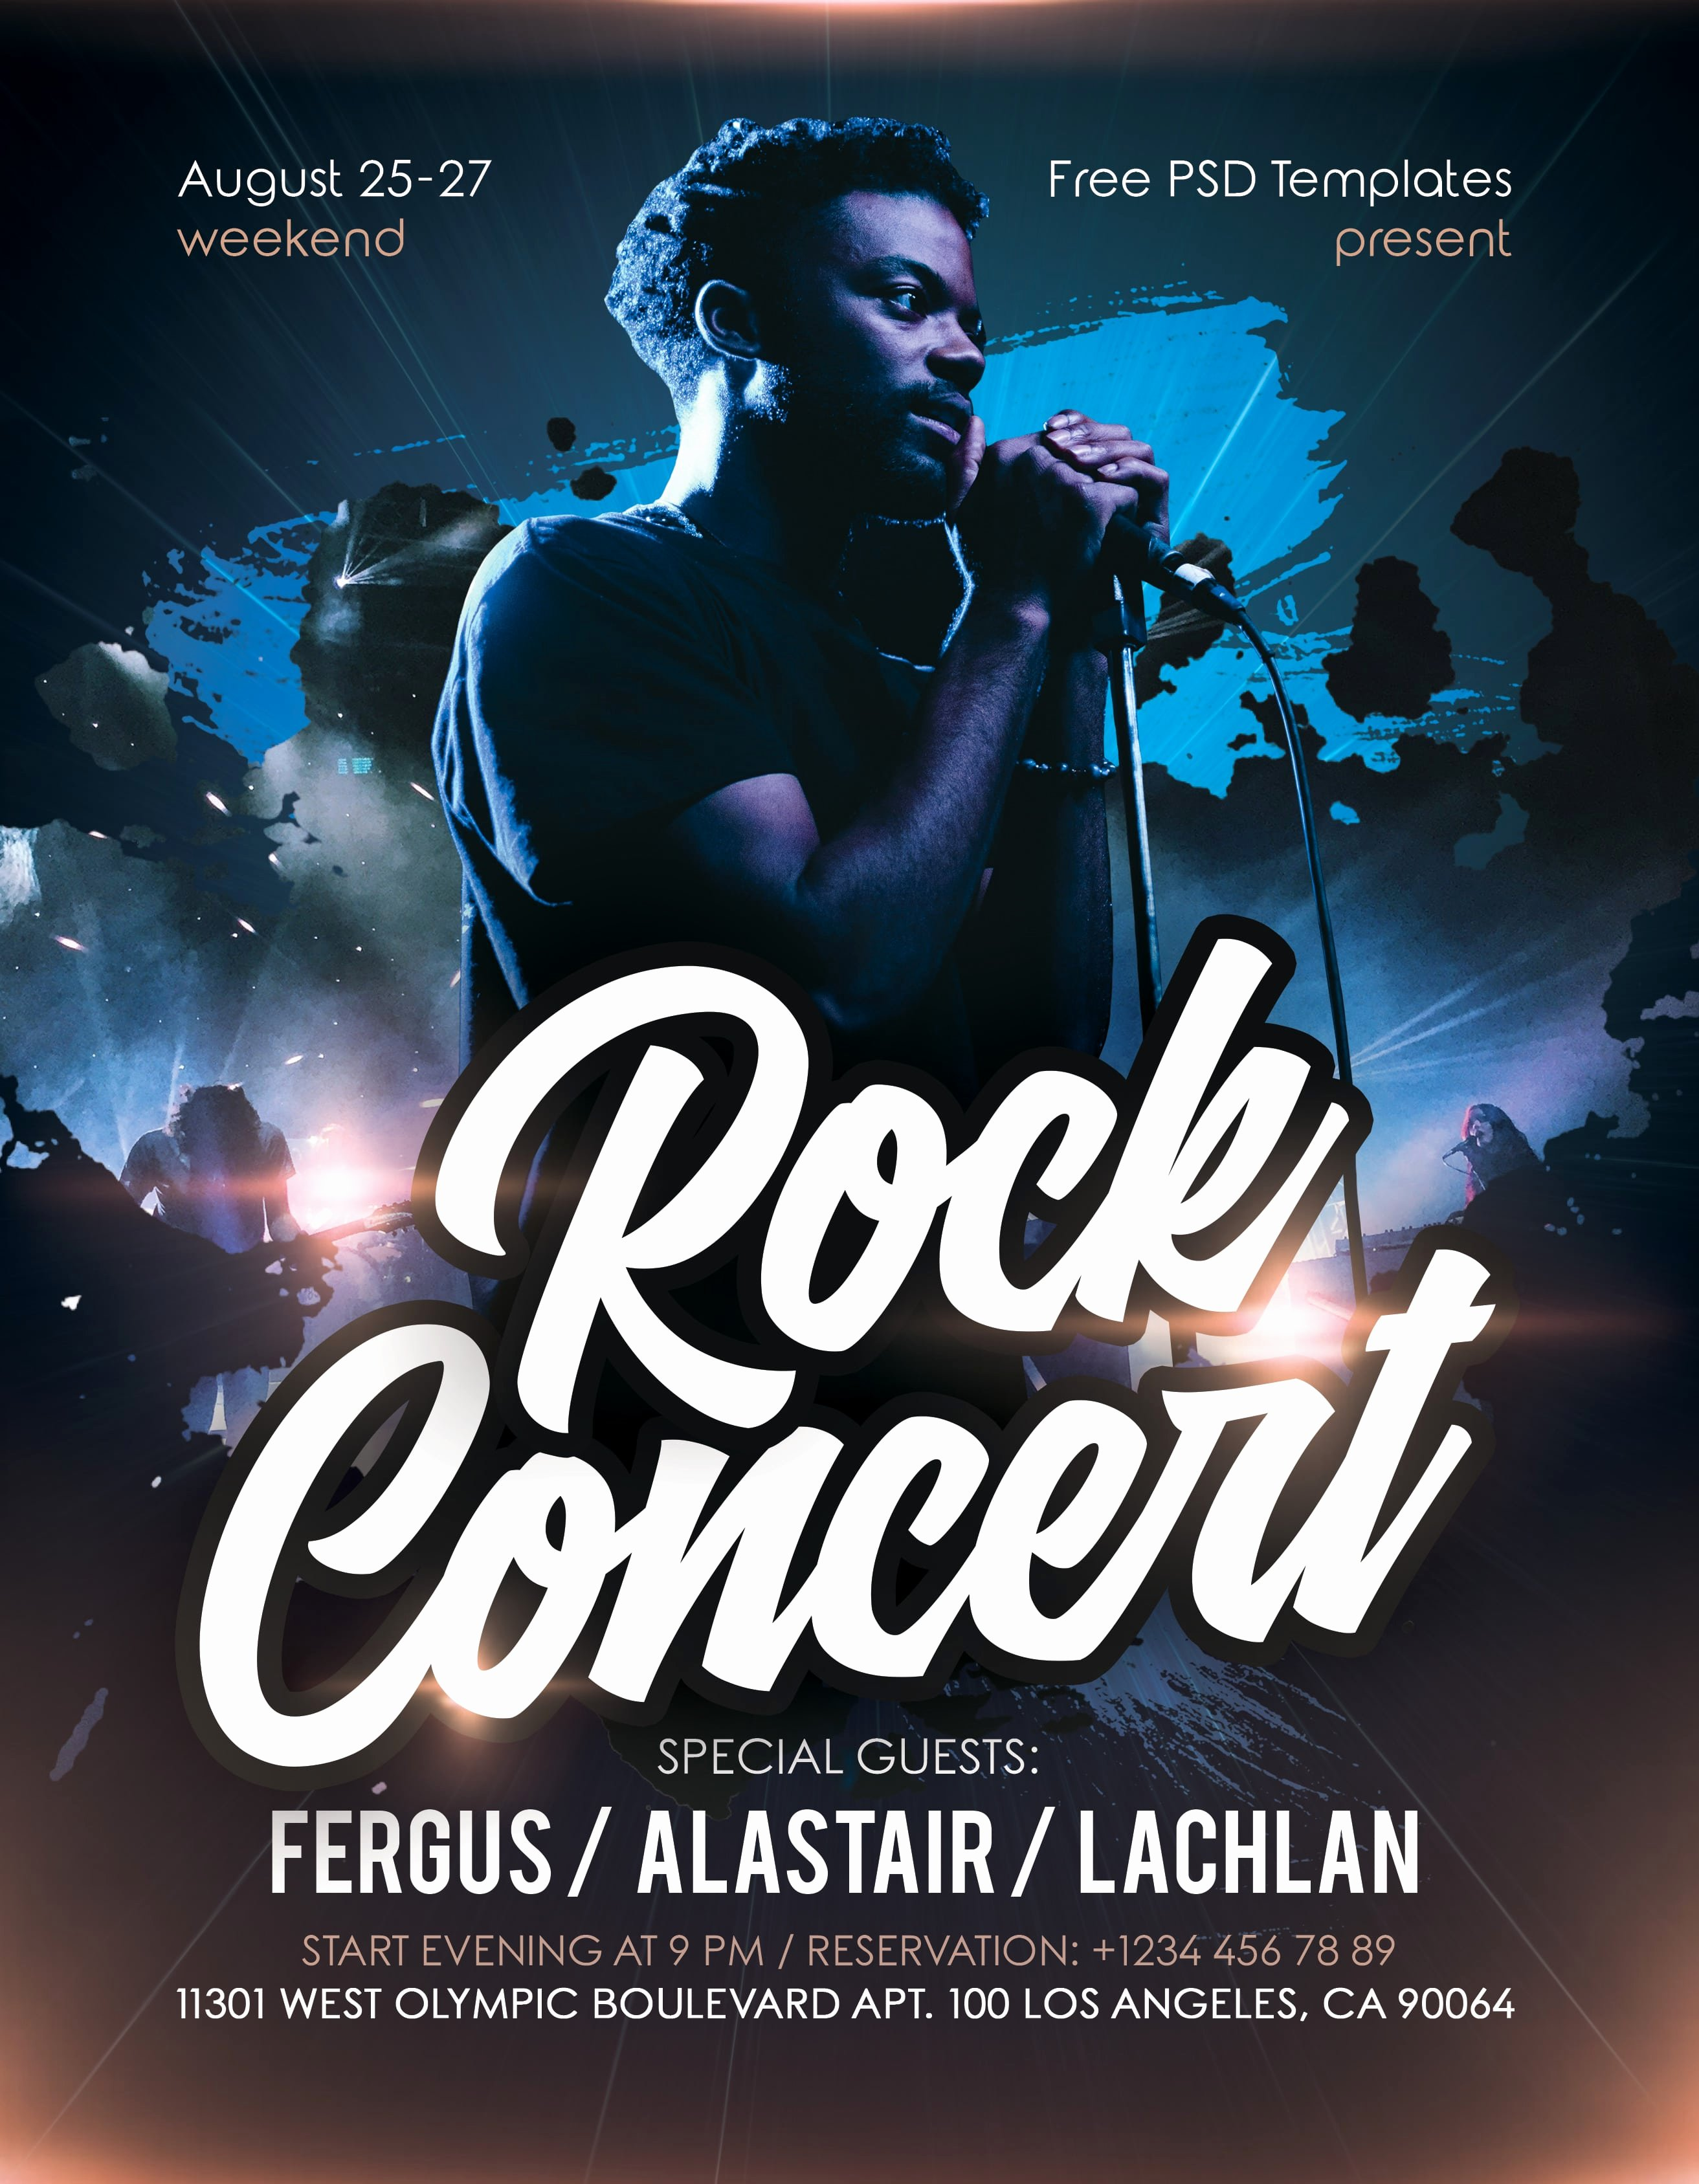 Free Concert Flyer Template Awesome Rock Concert event Free Psd Flyer Template Free Psd Flyer Templates Brochures Mockup & More